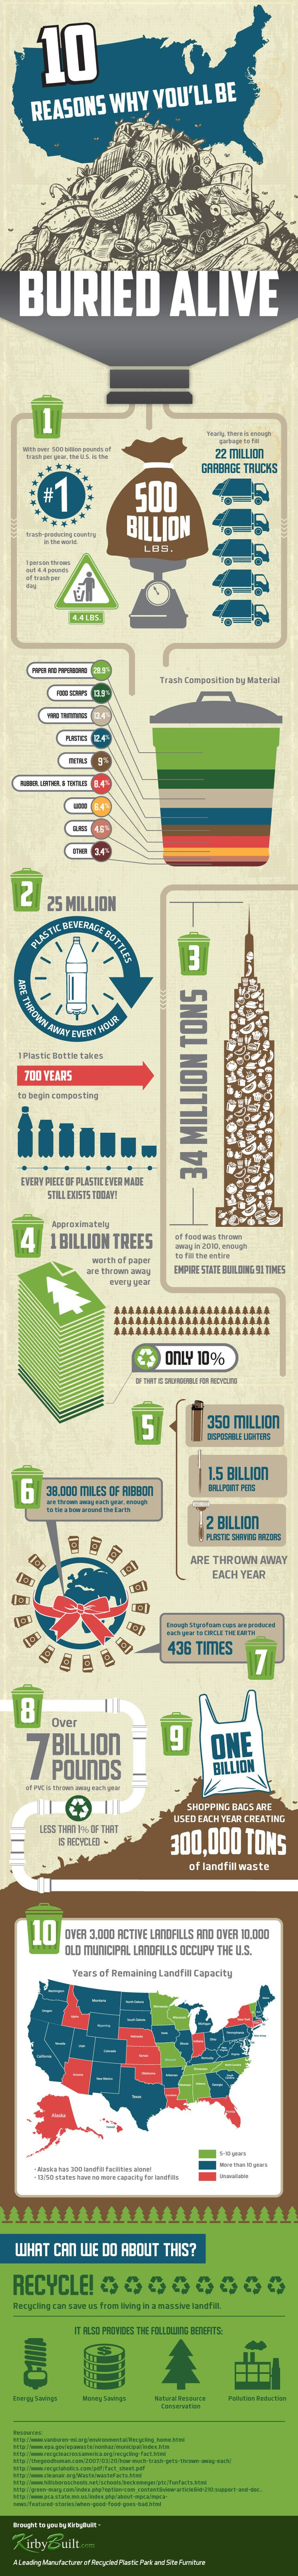 Infographie recyclage - déchets - landfill